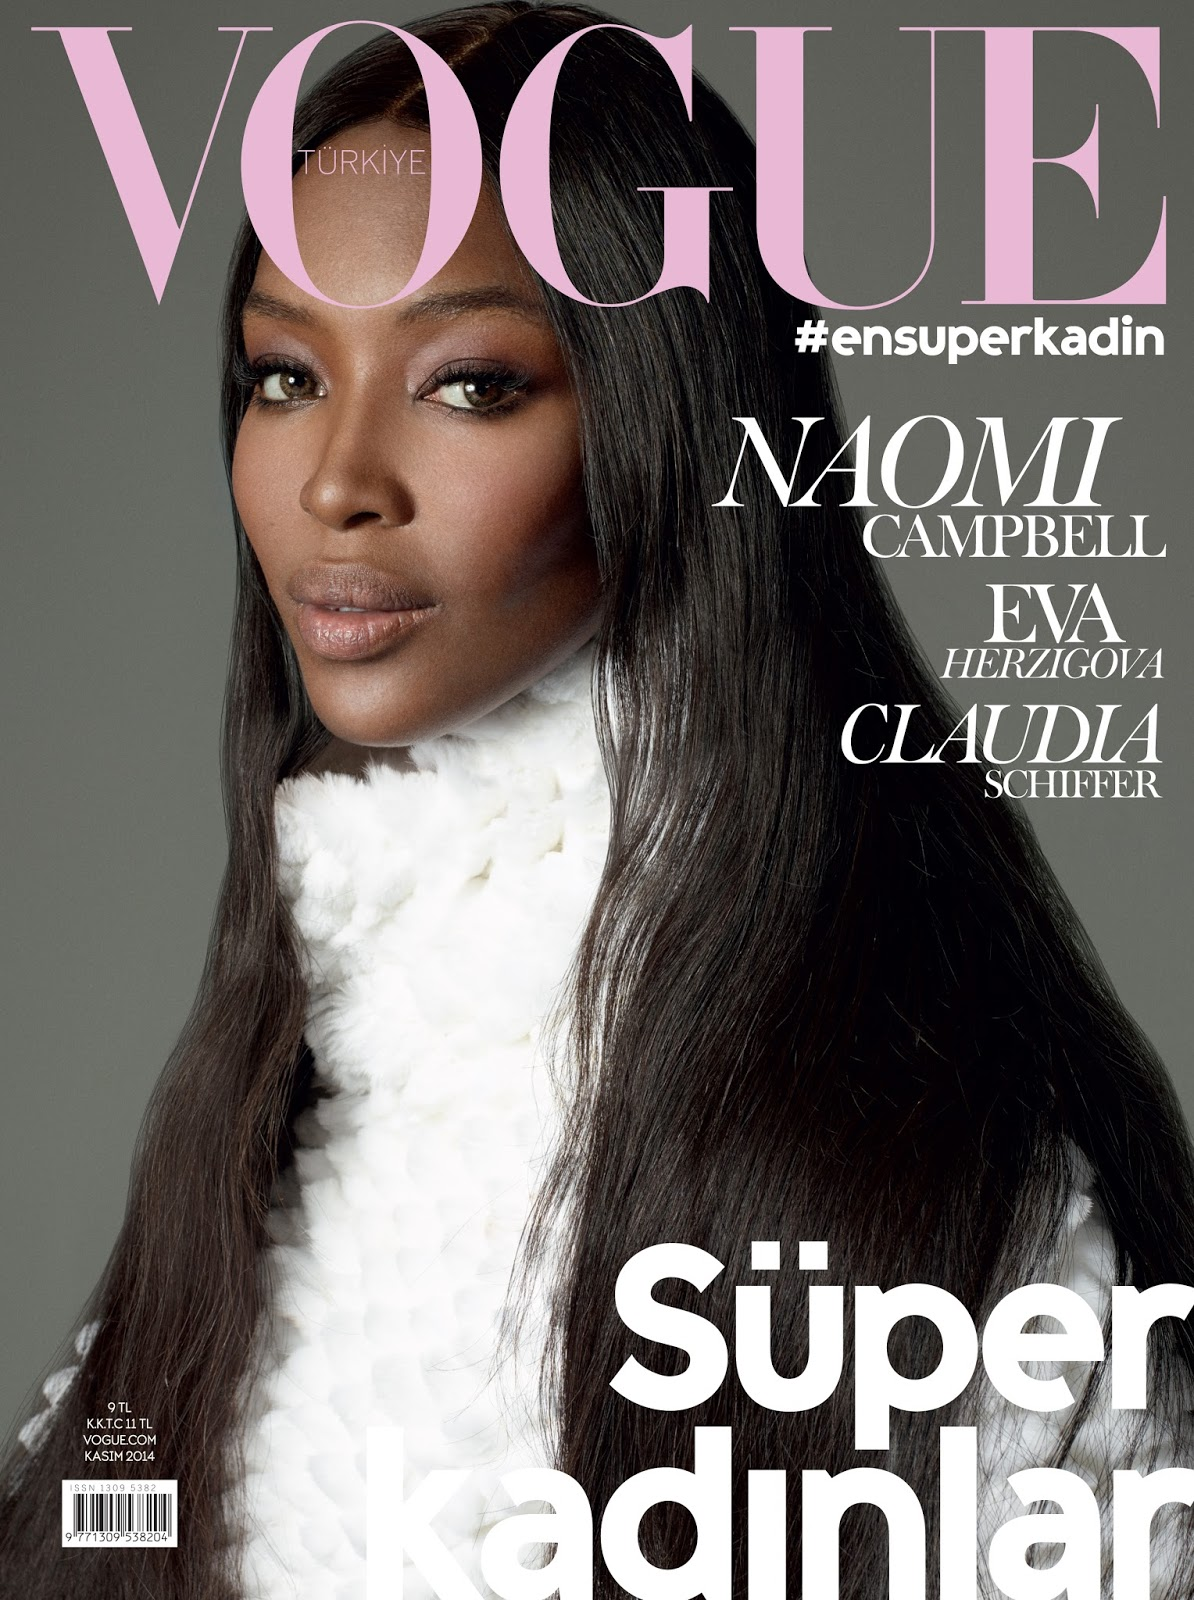 vogue naomi campbell magazine november covers eva claudia turkey schiffer italia herzigova meisel steven paris brazil throughout years cuneyt akeroglu